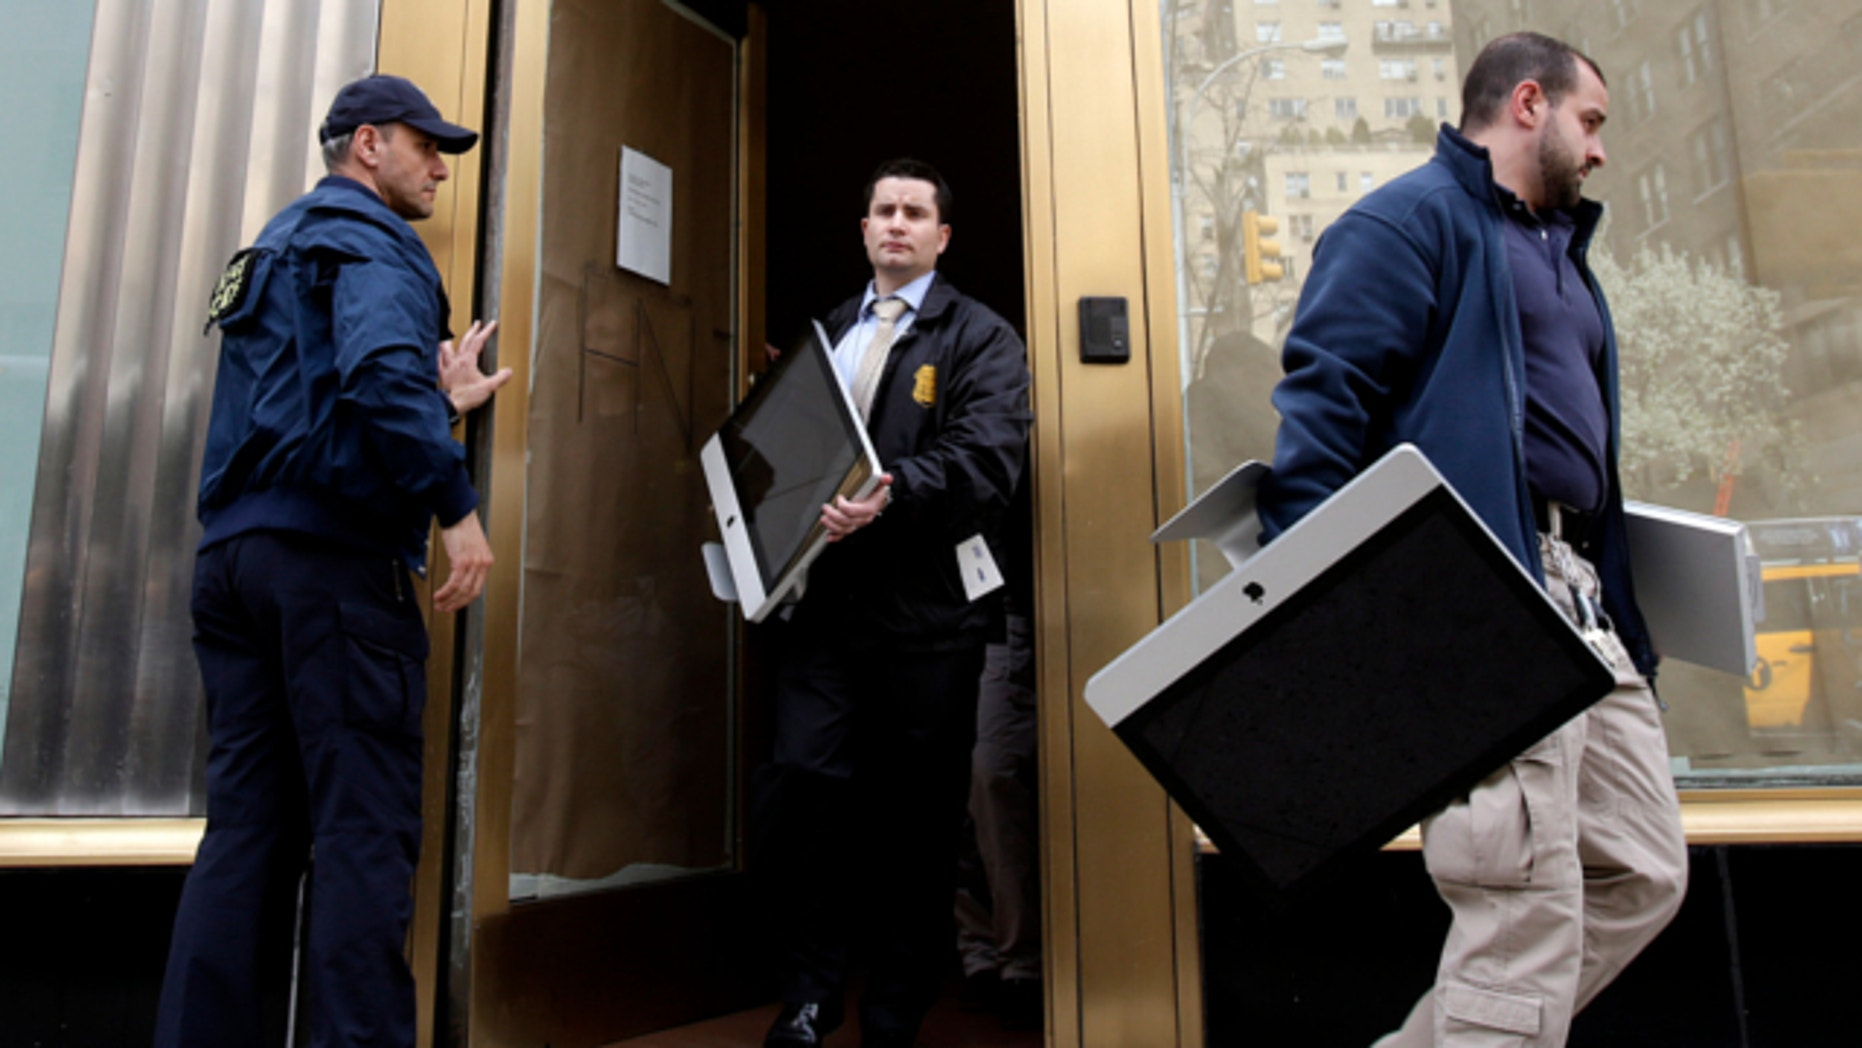 April 16, 2013: Federal agents remove items, including computers, from an art gallery in New York.